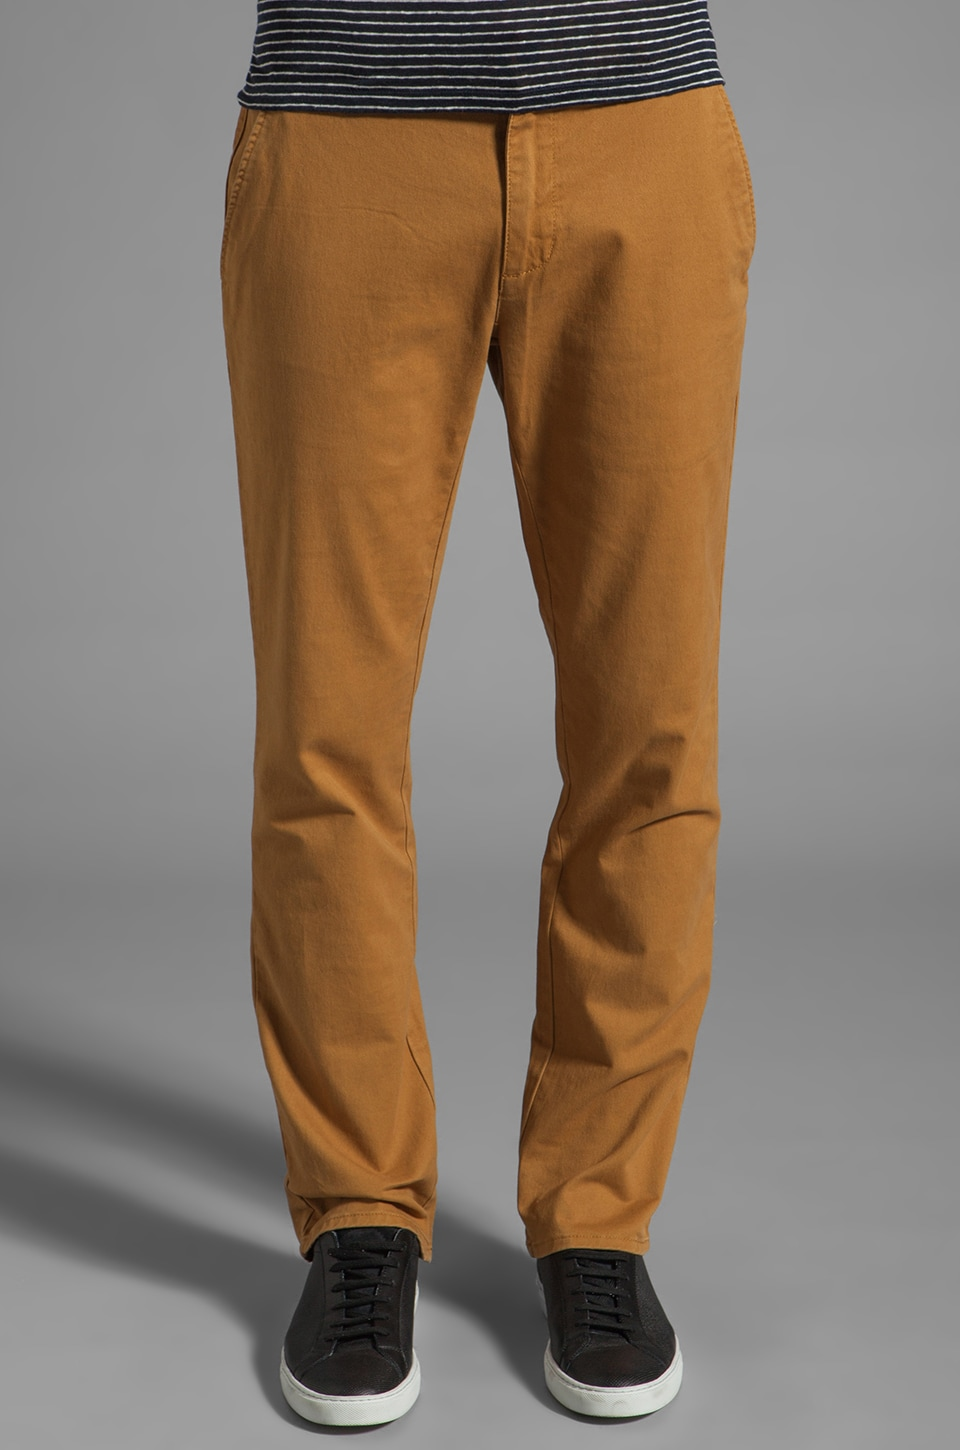 RVCA All Time Chino Pant in Wheat